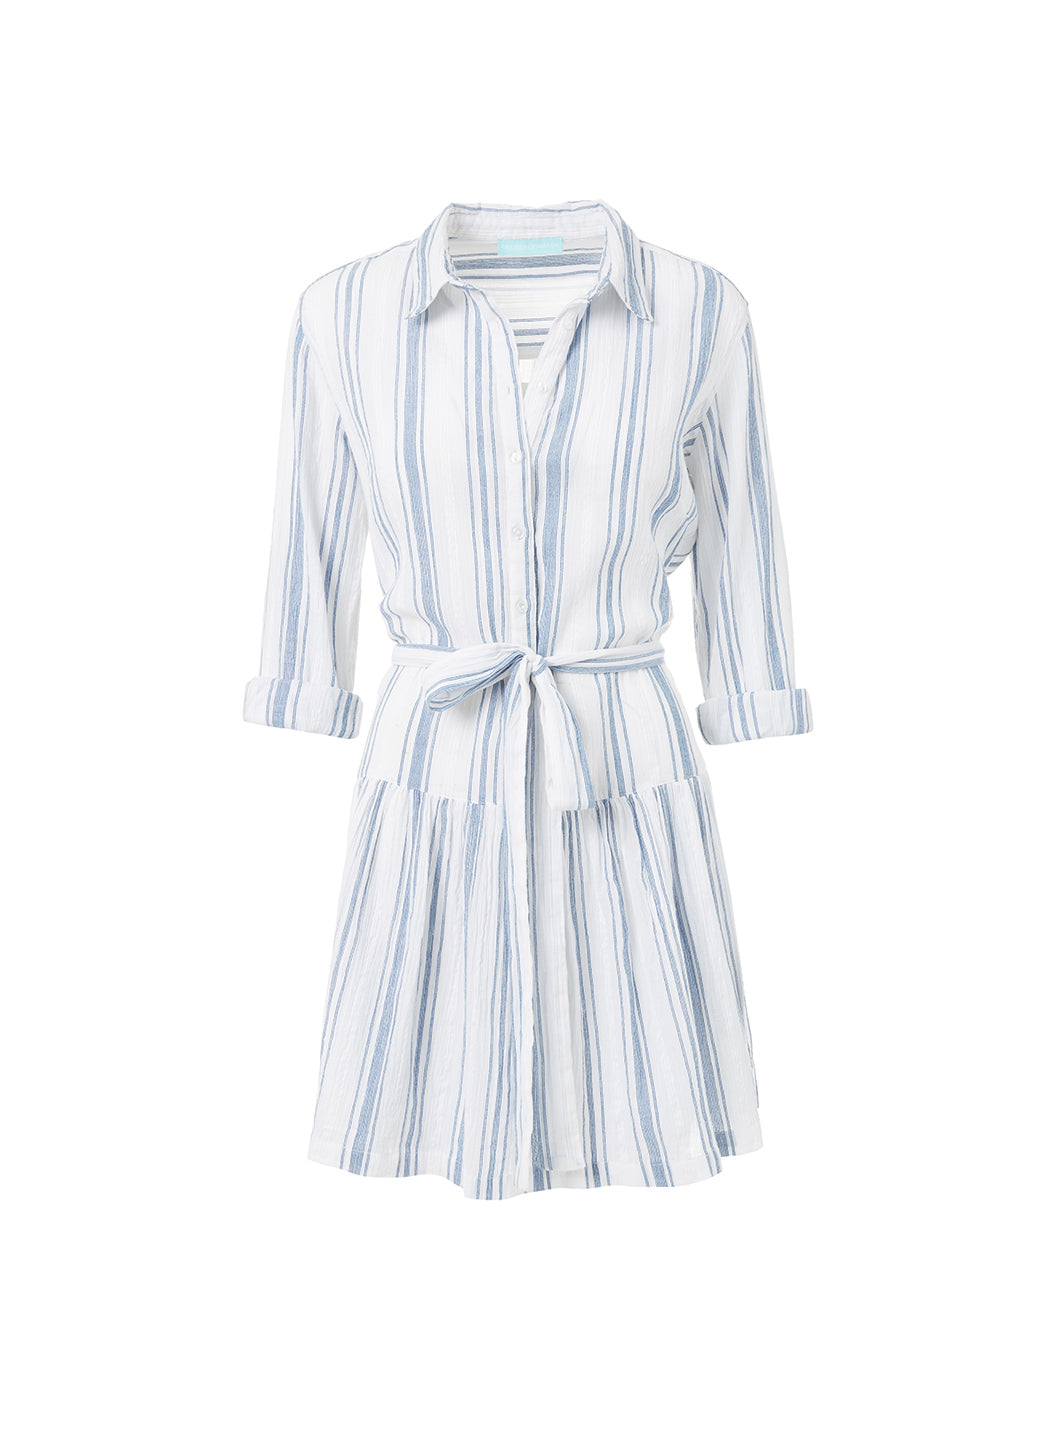 Amelia Blue Stripe Short Belted Shirt Dress  - Melissa Odabash Beachwear